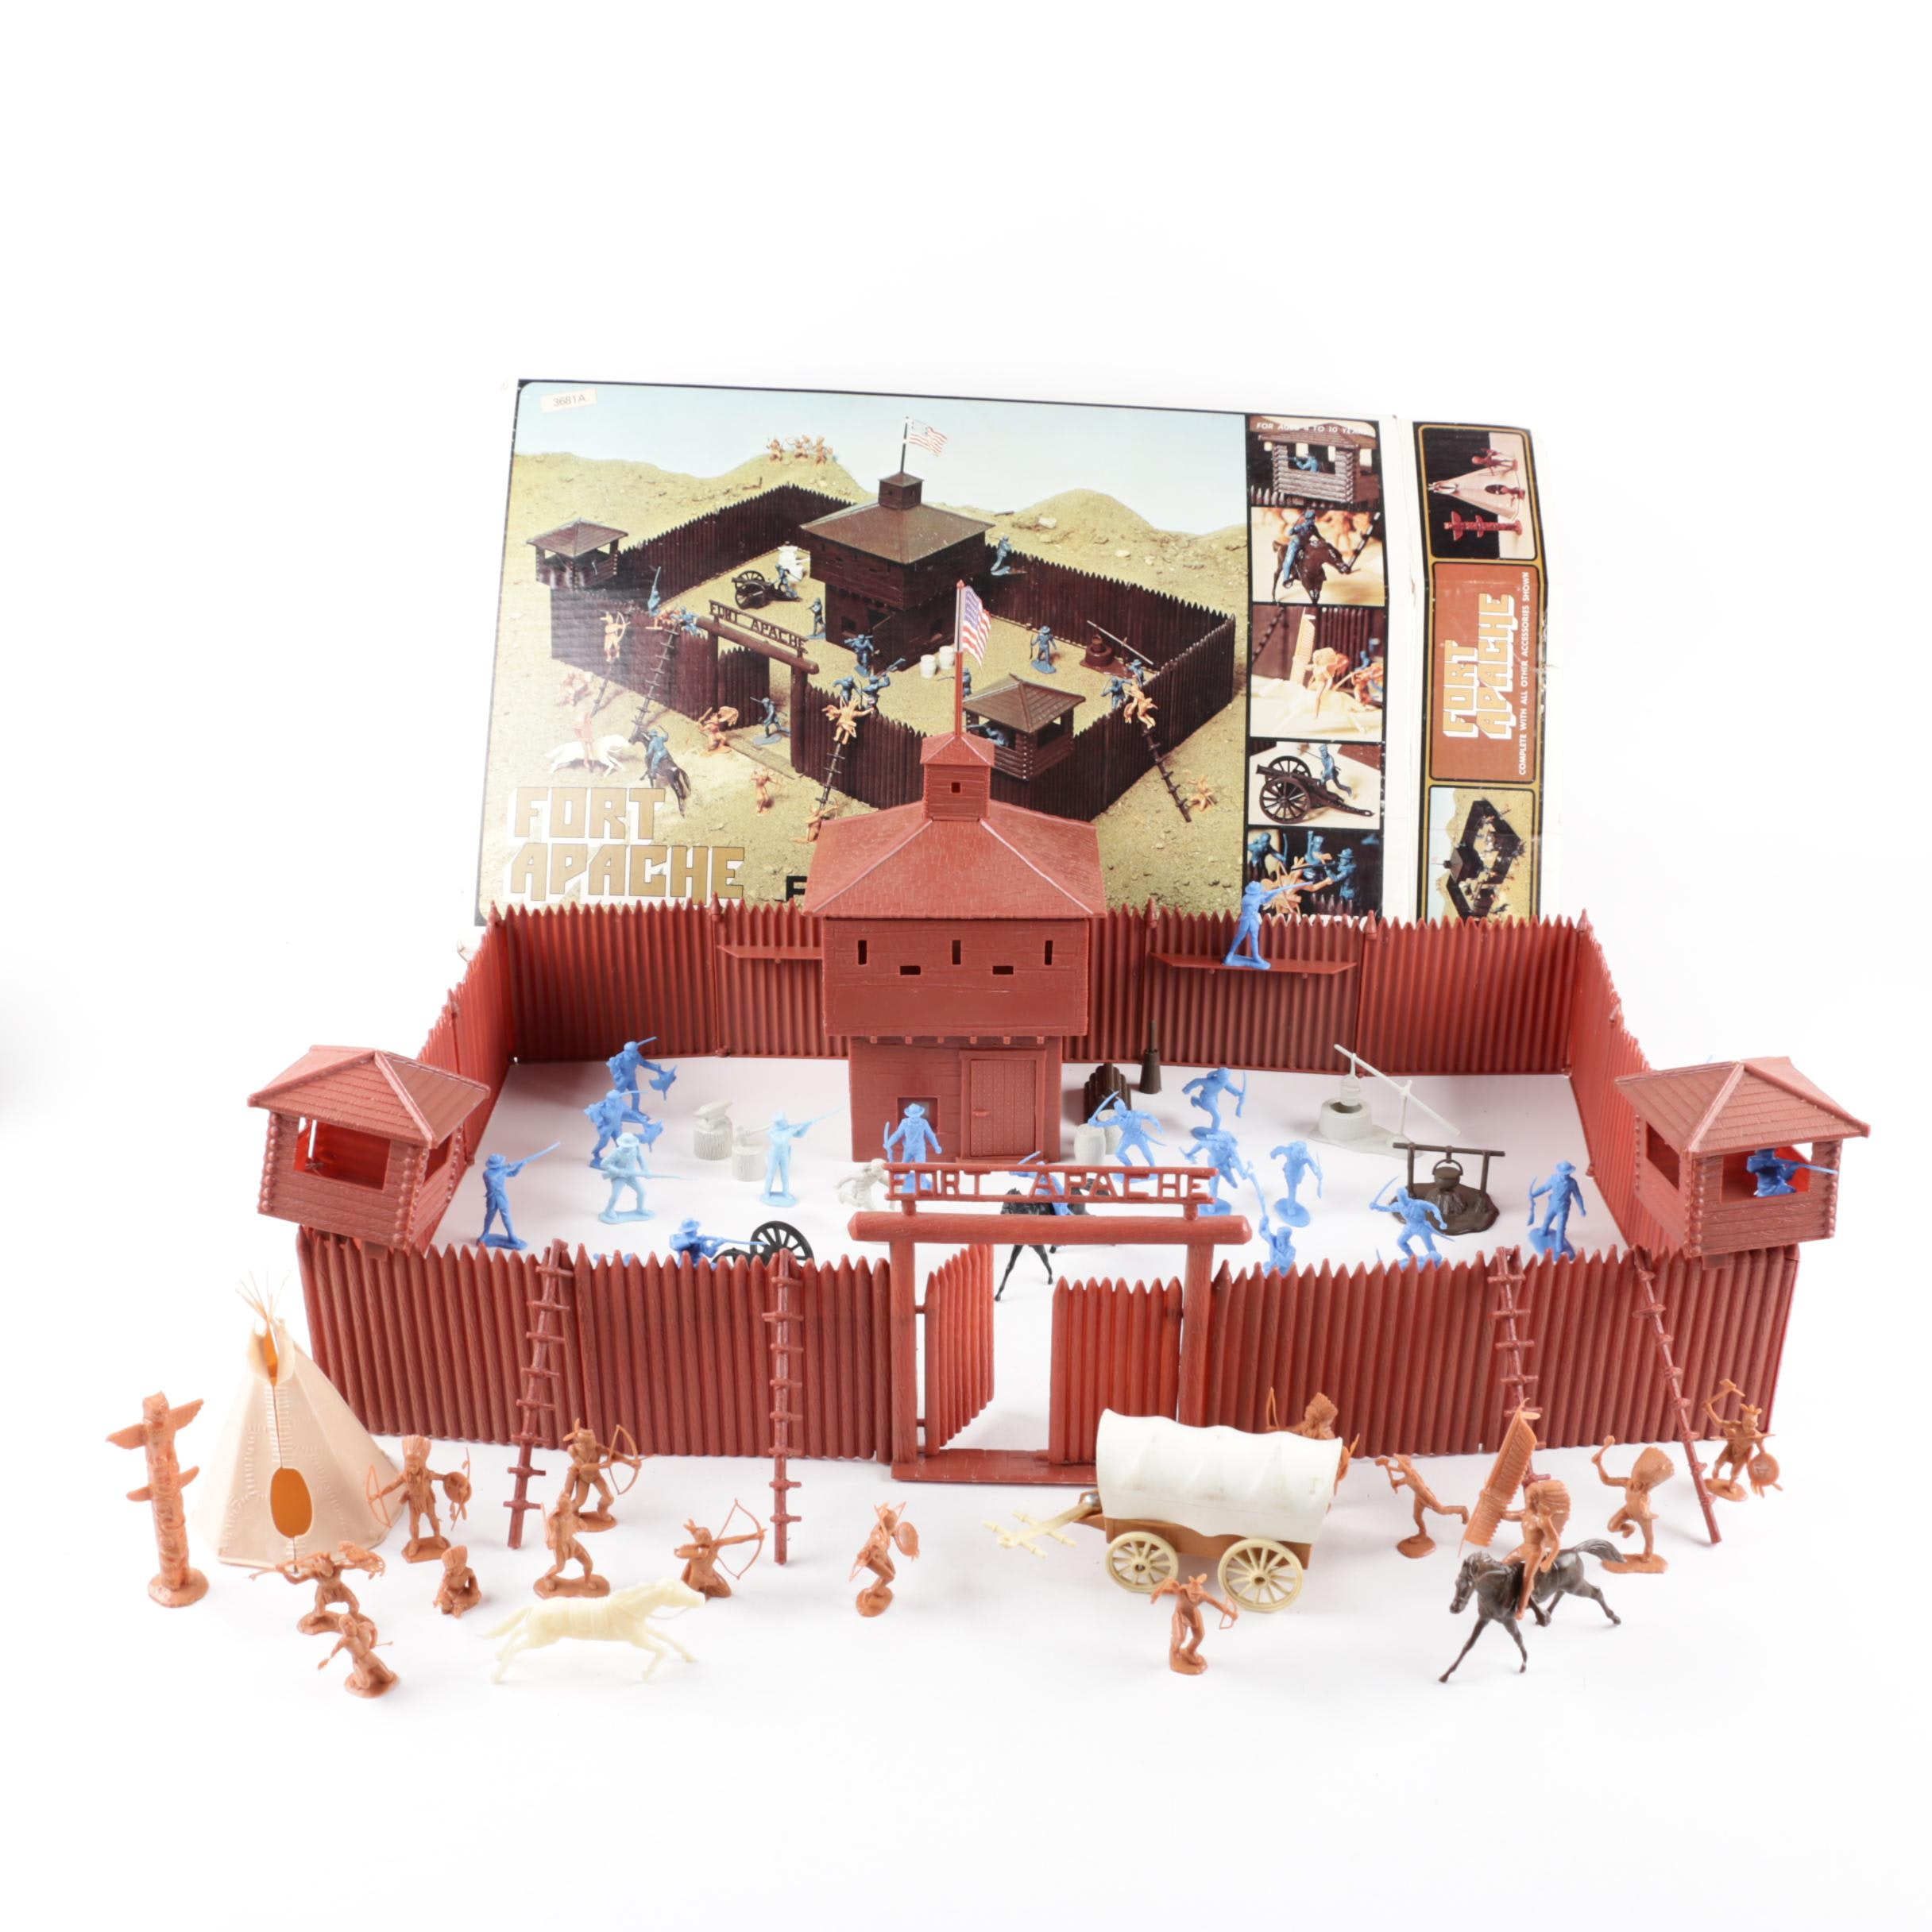 """Marx Toys """"Fort Apache"""" Playset, 1973"""